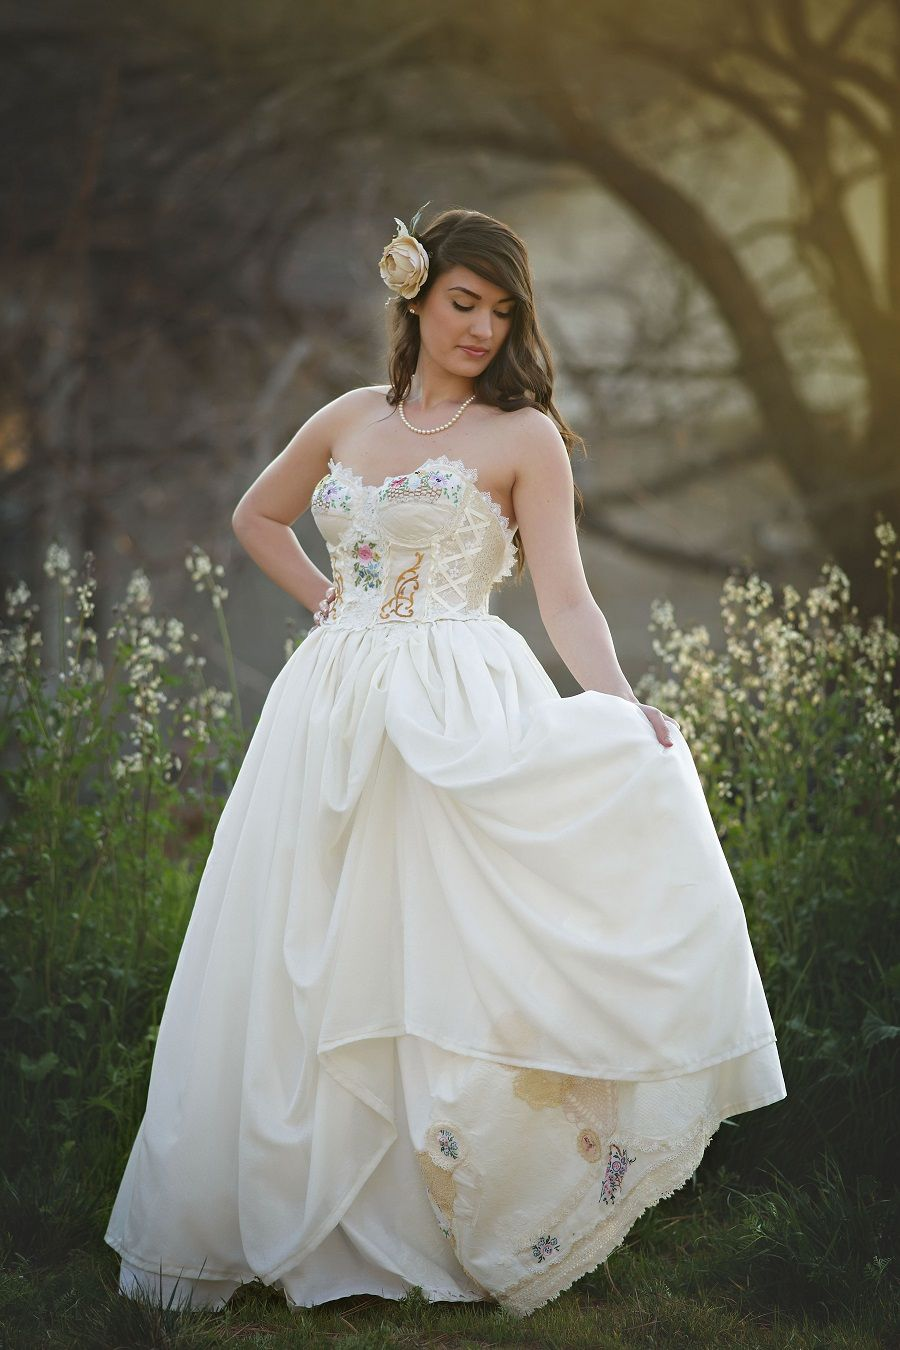 99+ One Of A Kind Wedding Dresses - Wedding Dresses for Cheap Check ...